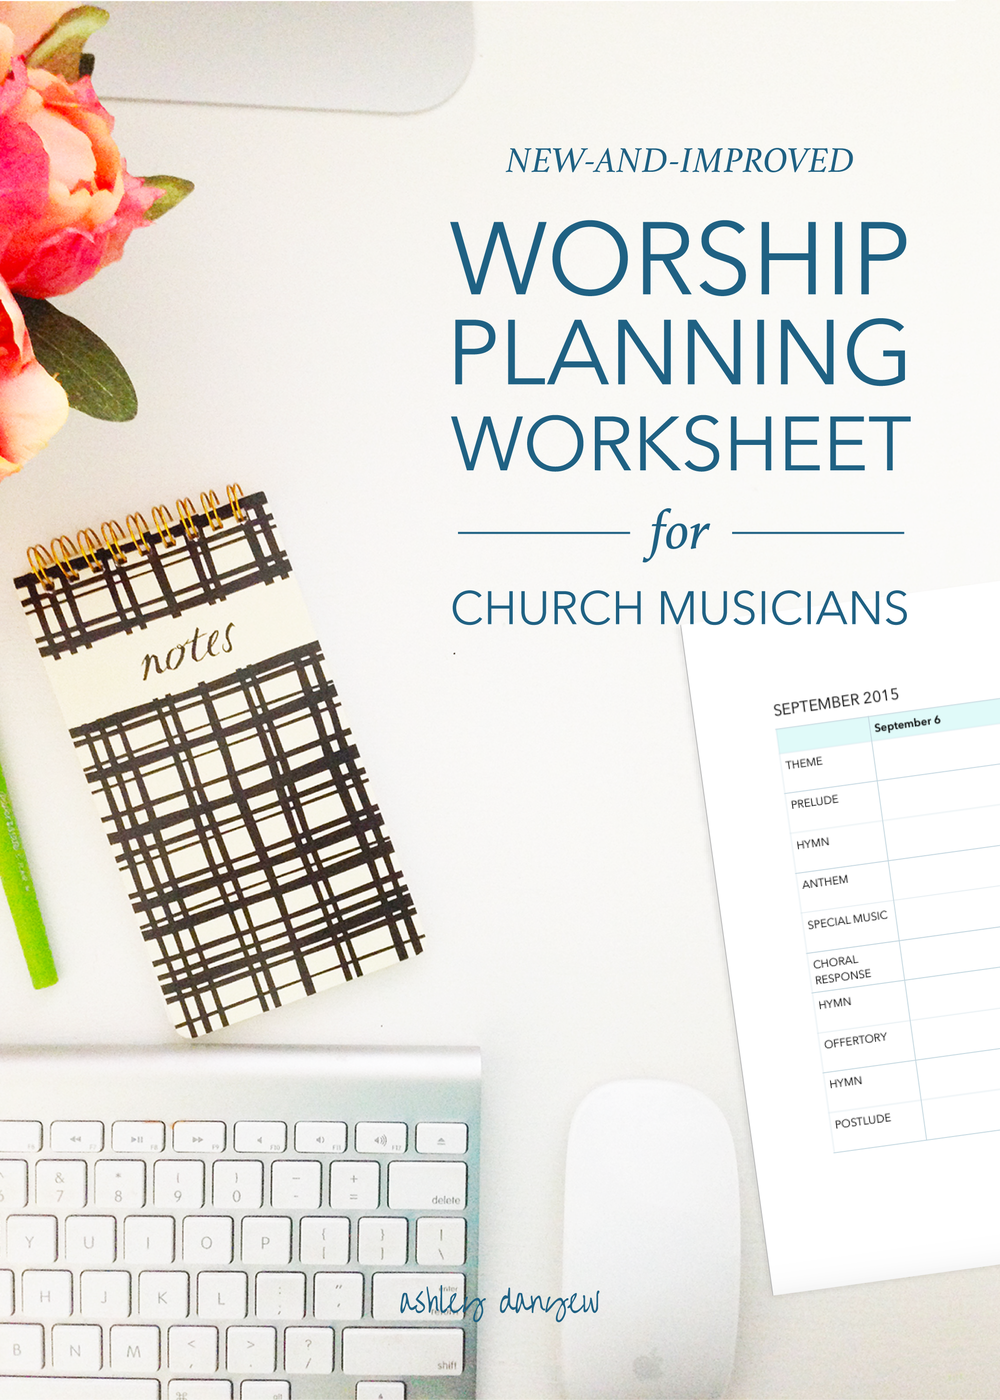 Copy of A New-and-Improved Worship Planning Worksheet for Church Musicians